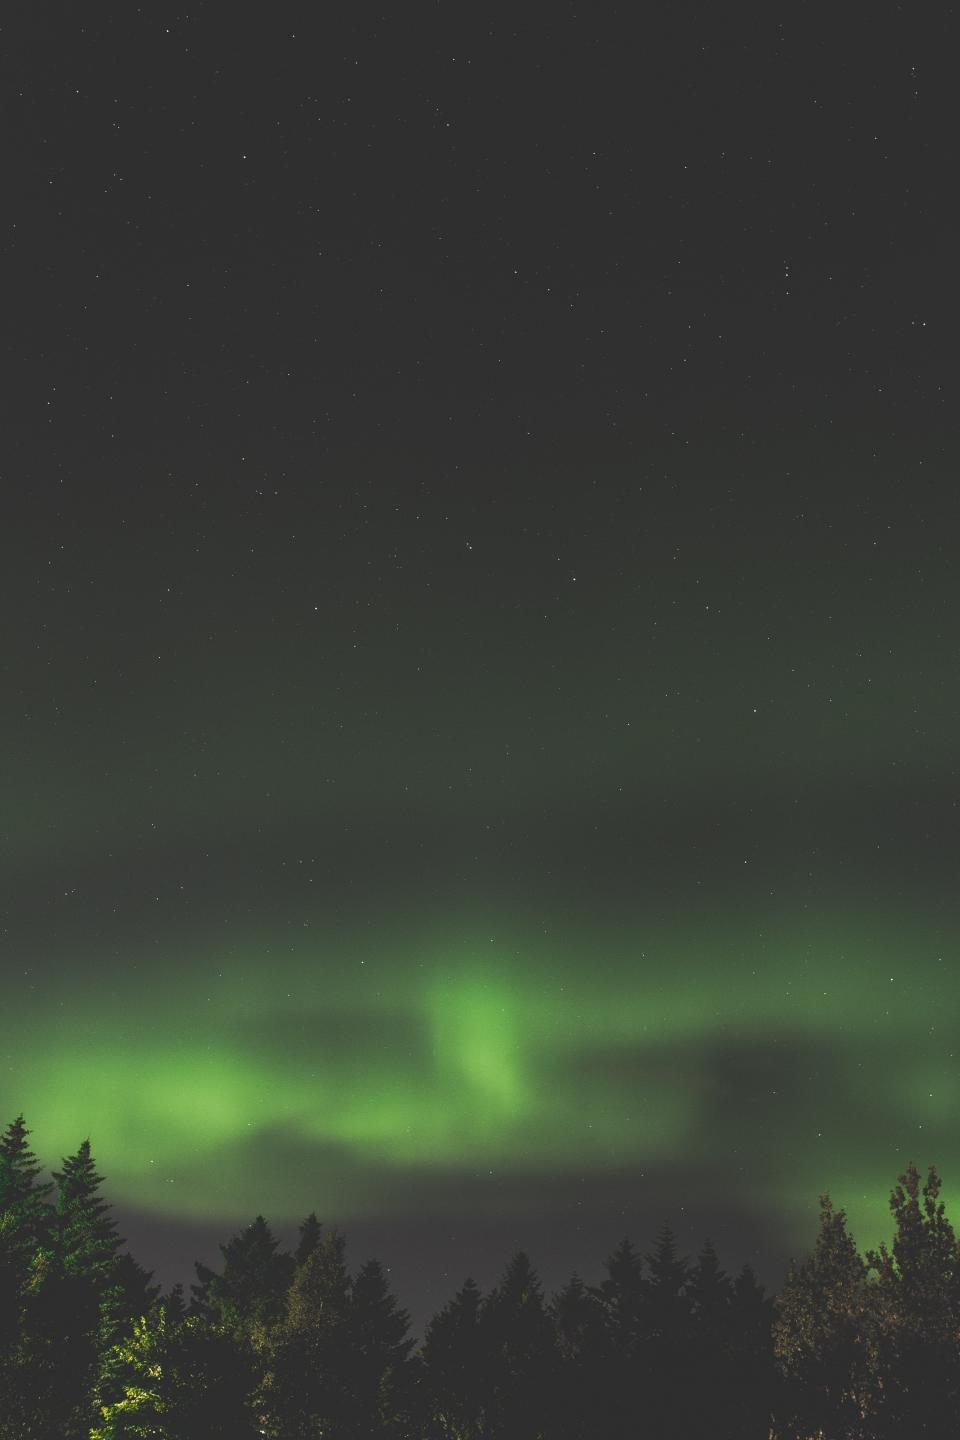 Free stock photo of aurora green